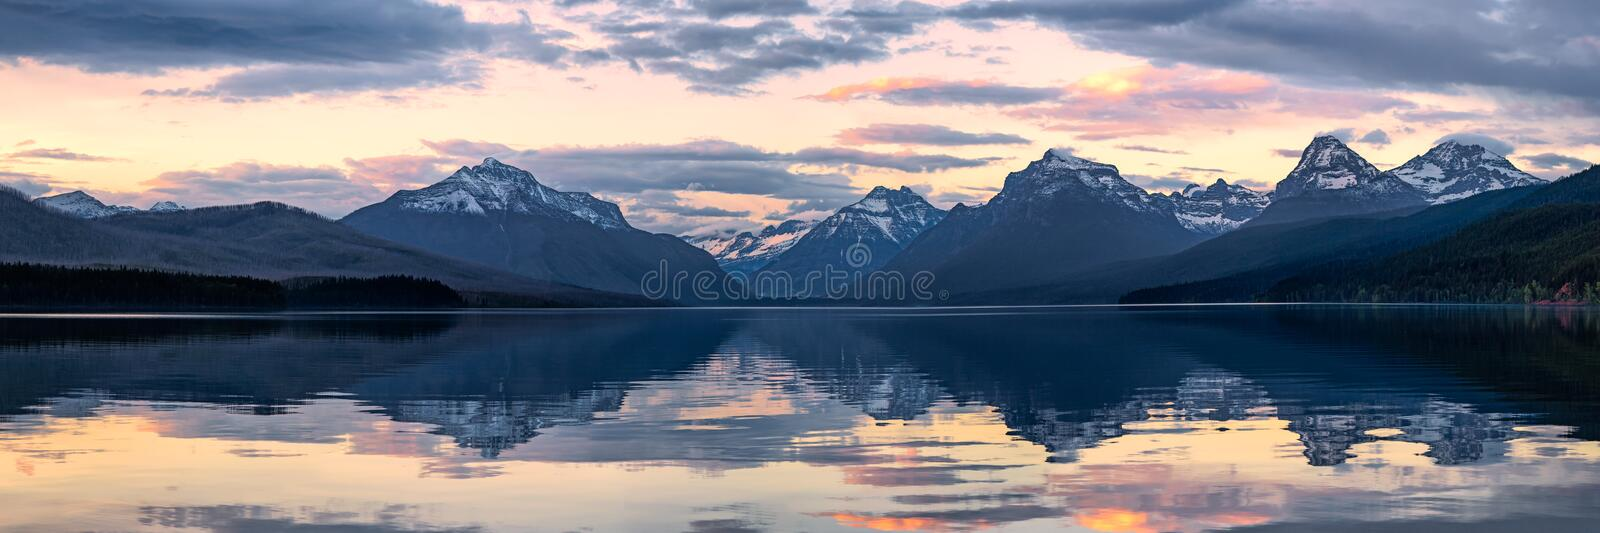 Lake McDonald in Glacier National Park at sunset royalty free stock photo